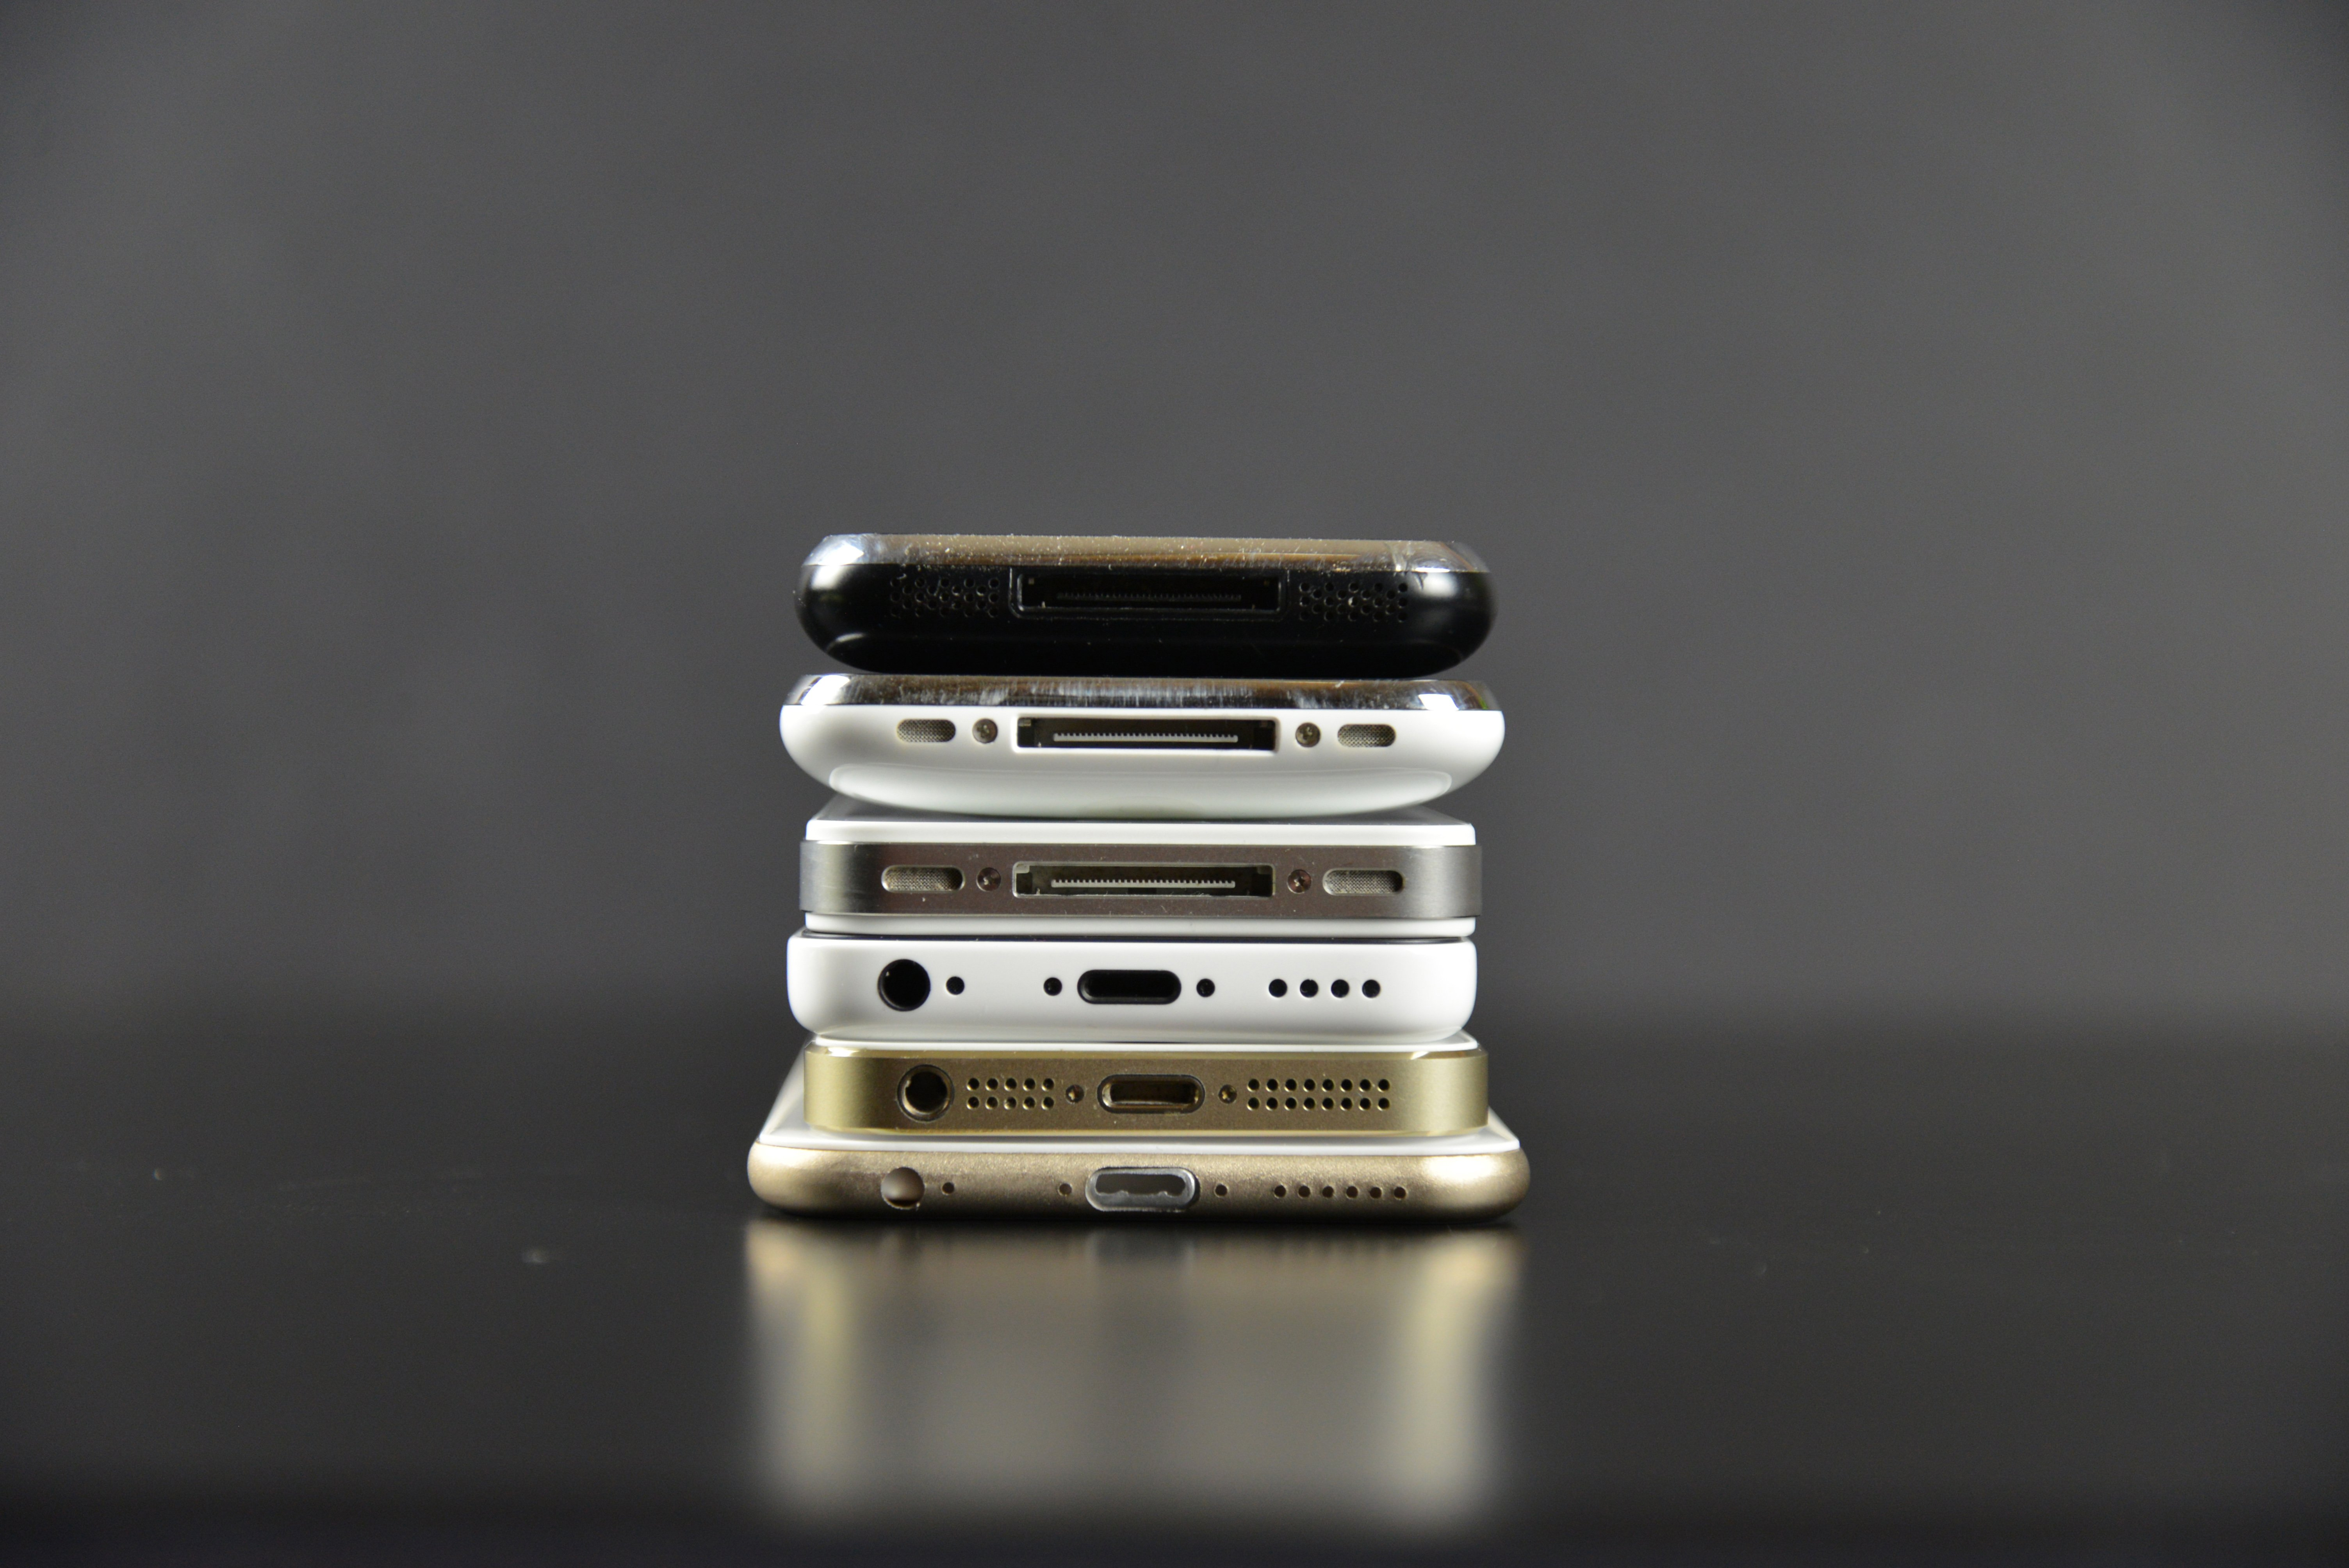 A Visual Look at Apple's iPhone 6 vs Previous iPhones